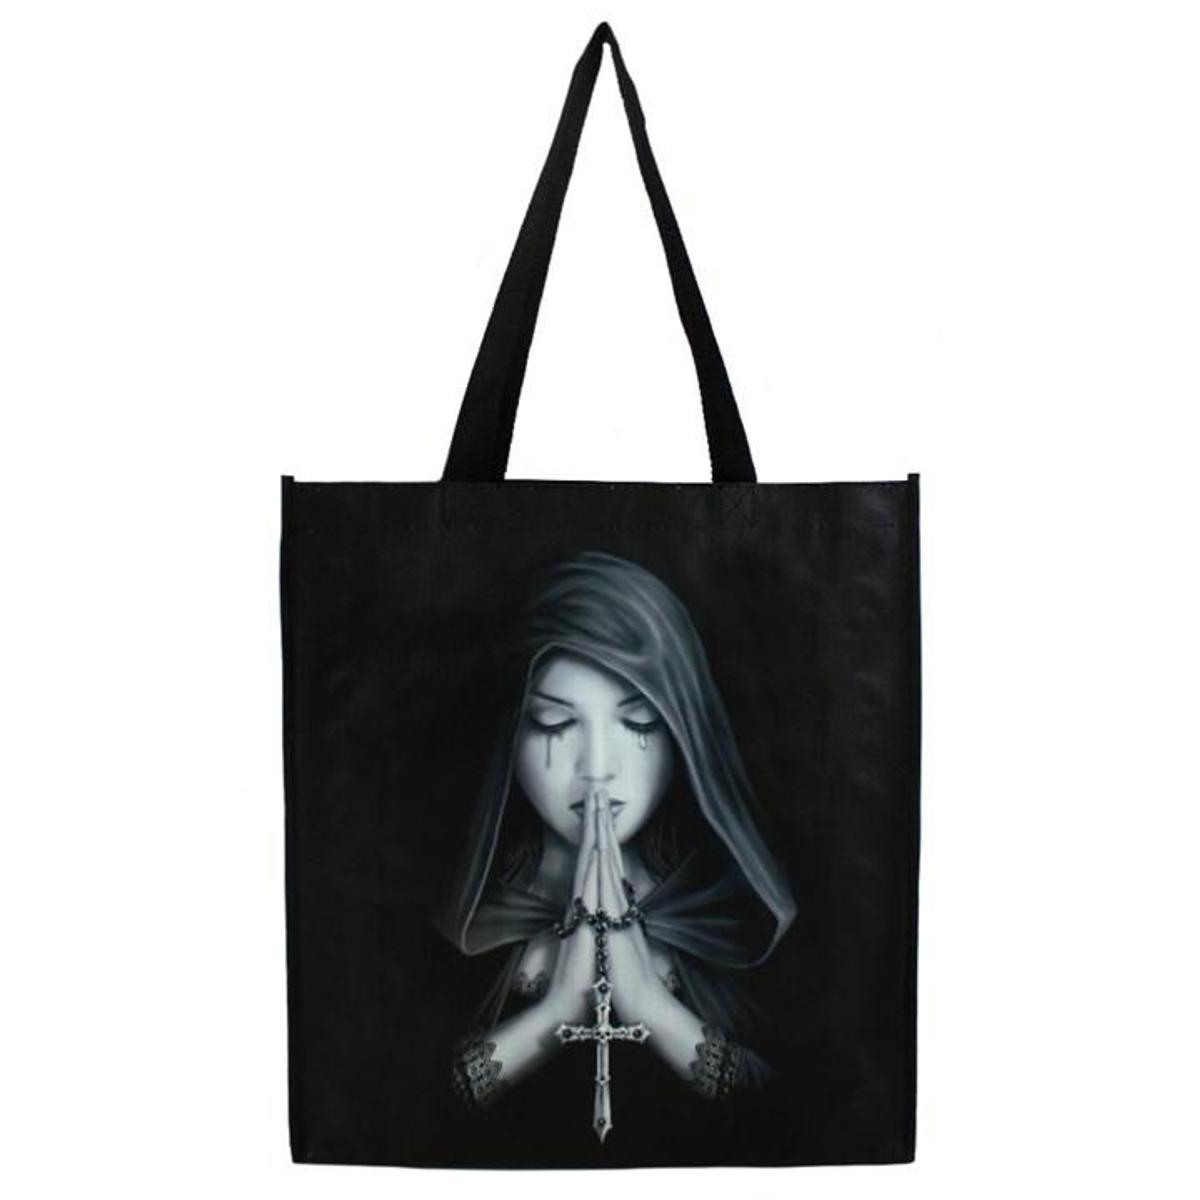 Gothic prayer shopping bag £4.99  This shopping bag features the beautiful Gothic Prayer artwork by Anne Stokes. Showcasing the main artwork on the front and a continuing design on the side.  H65.5cm X W35cm X D9cm  This bag is made from woven polypropylene.  #ad